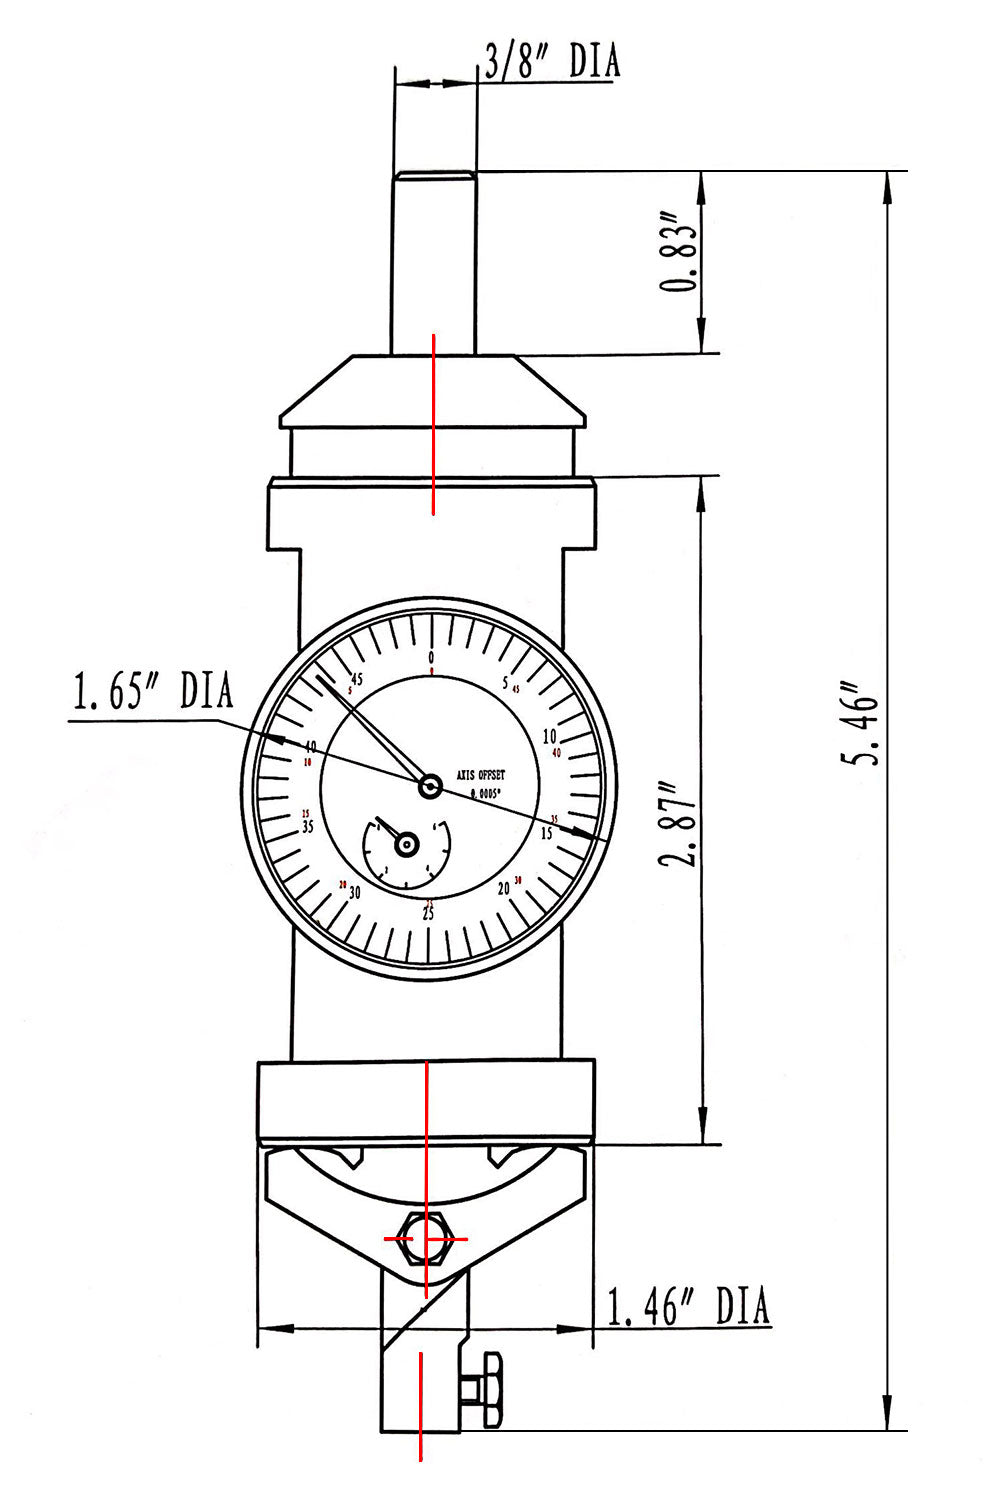 Diagram of JD21-0001 and JD21-0003